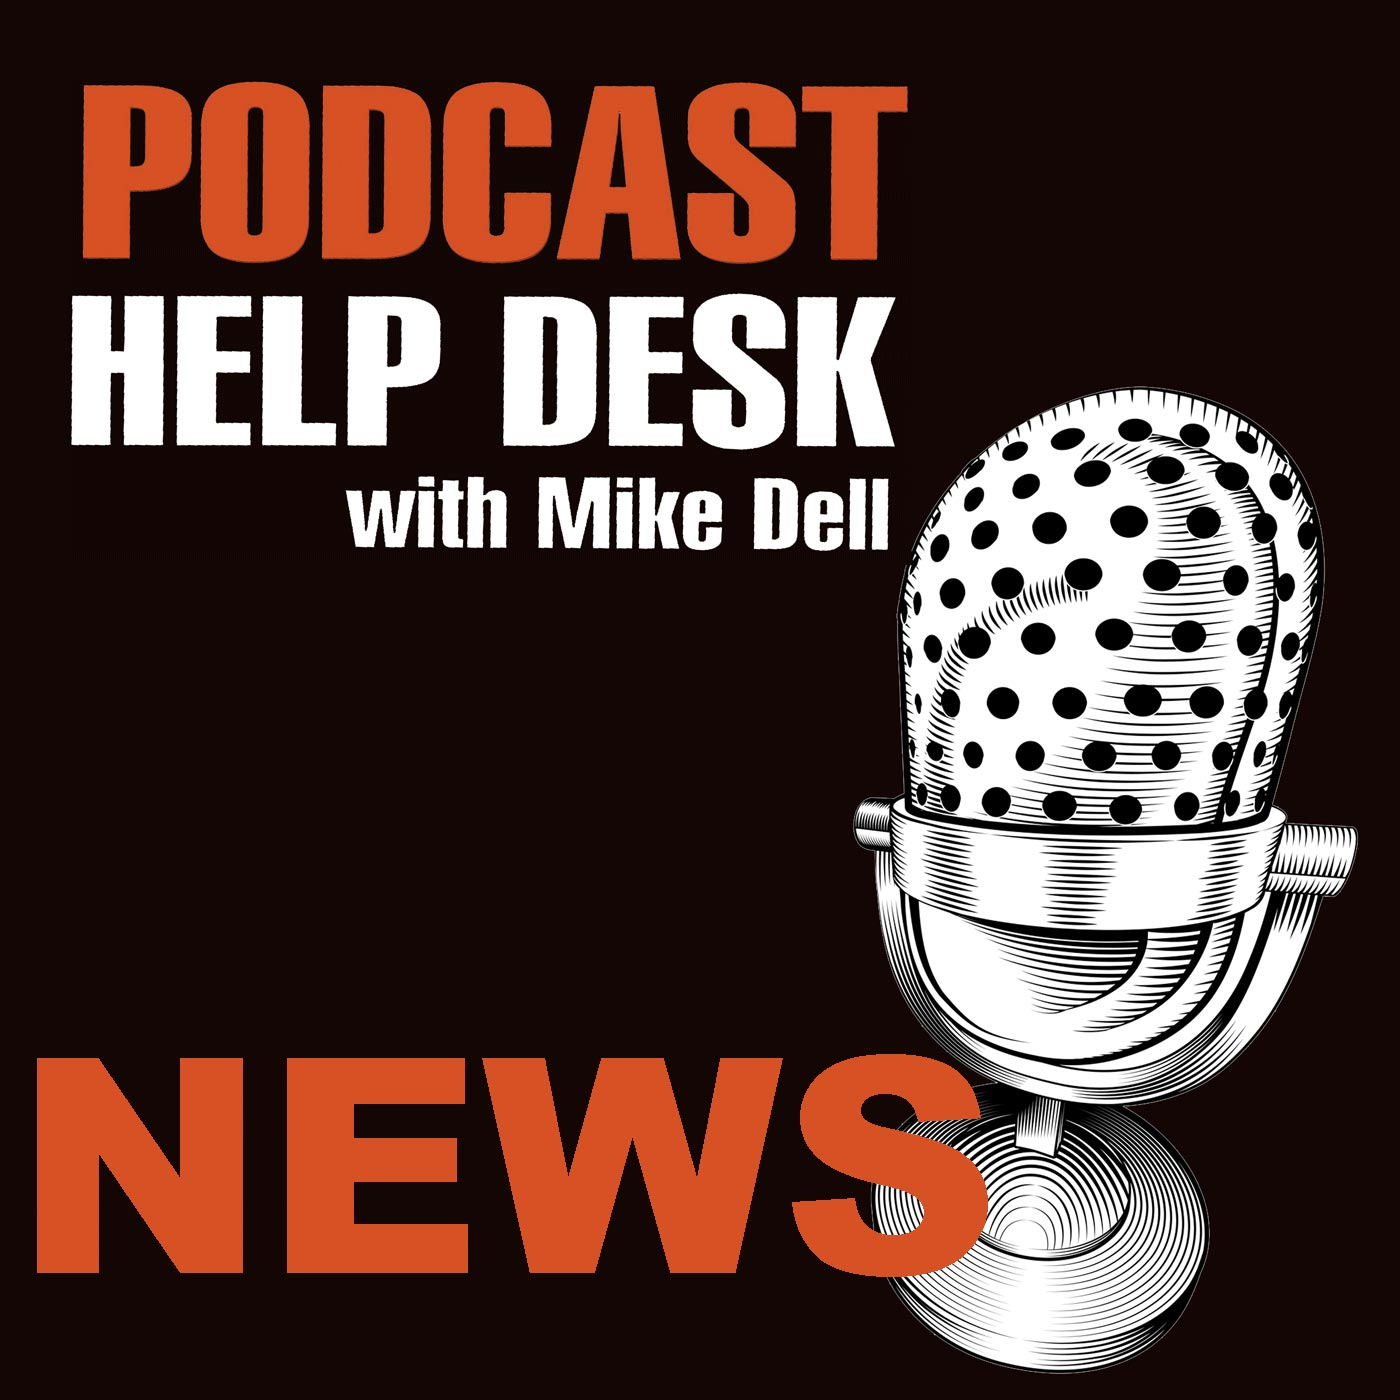 Podcast Help Desk News